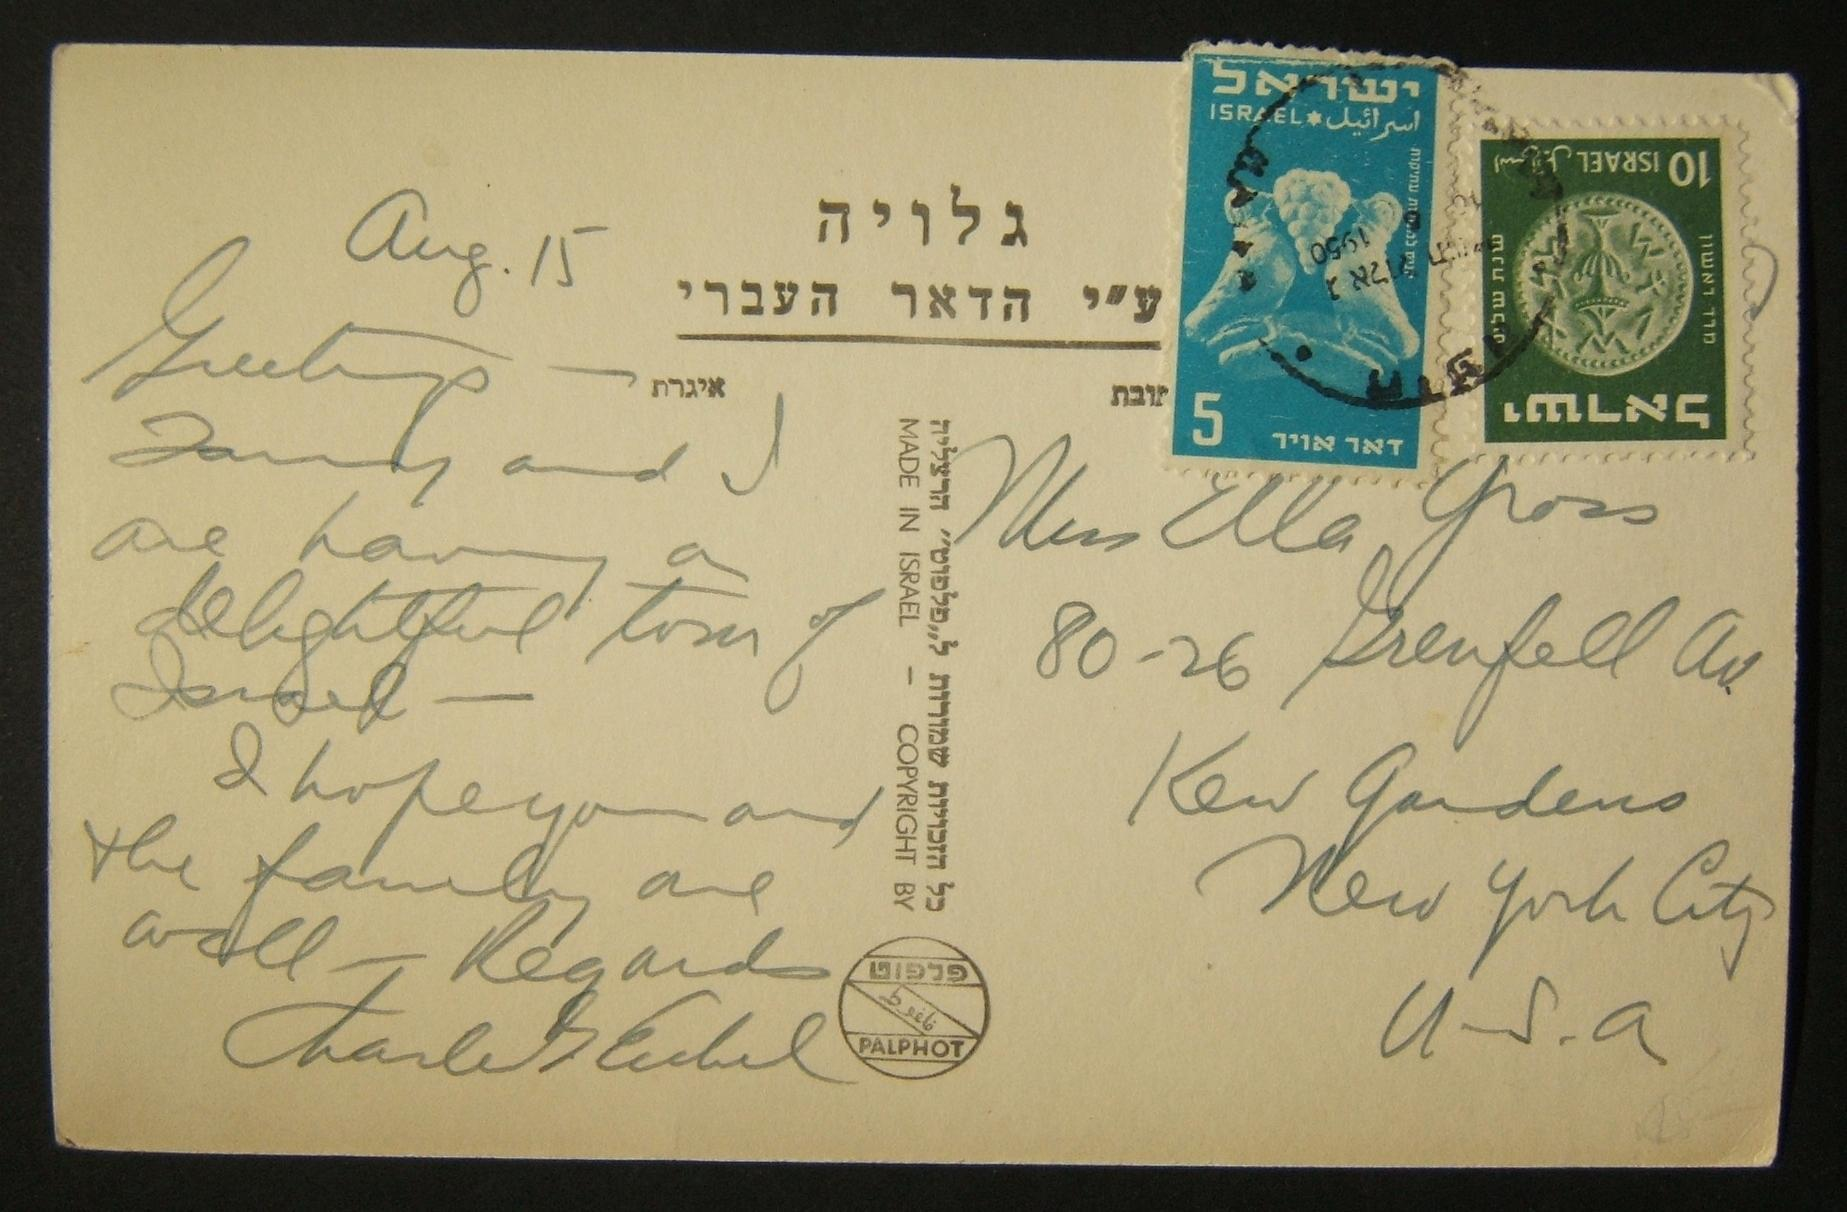 1950 1st airmail / PO's, rates & routes: 16-8-50 surface mailed ppc (Palphot/Haifa bay) HAIFA to NYC franked 15pr at the SU-2 period pc rate using mix of 5pr (Ba32) + 10pr 1949 2nd